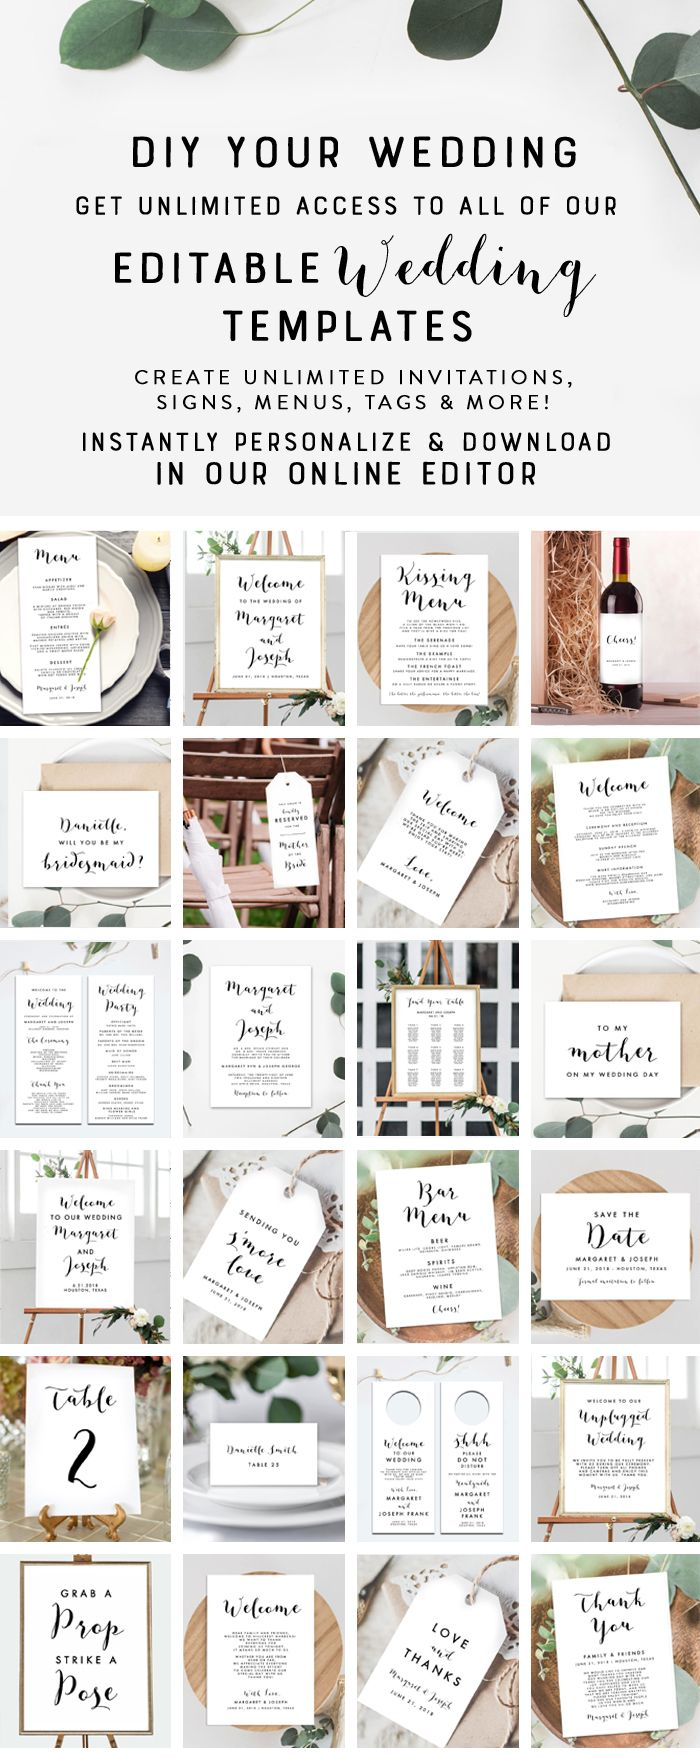 69 best DIY Wedding Templates images on Pinterest